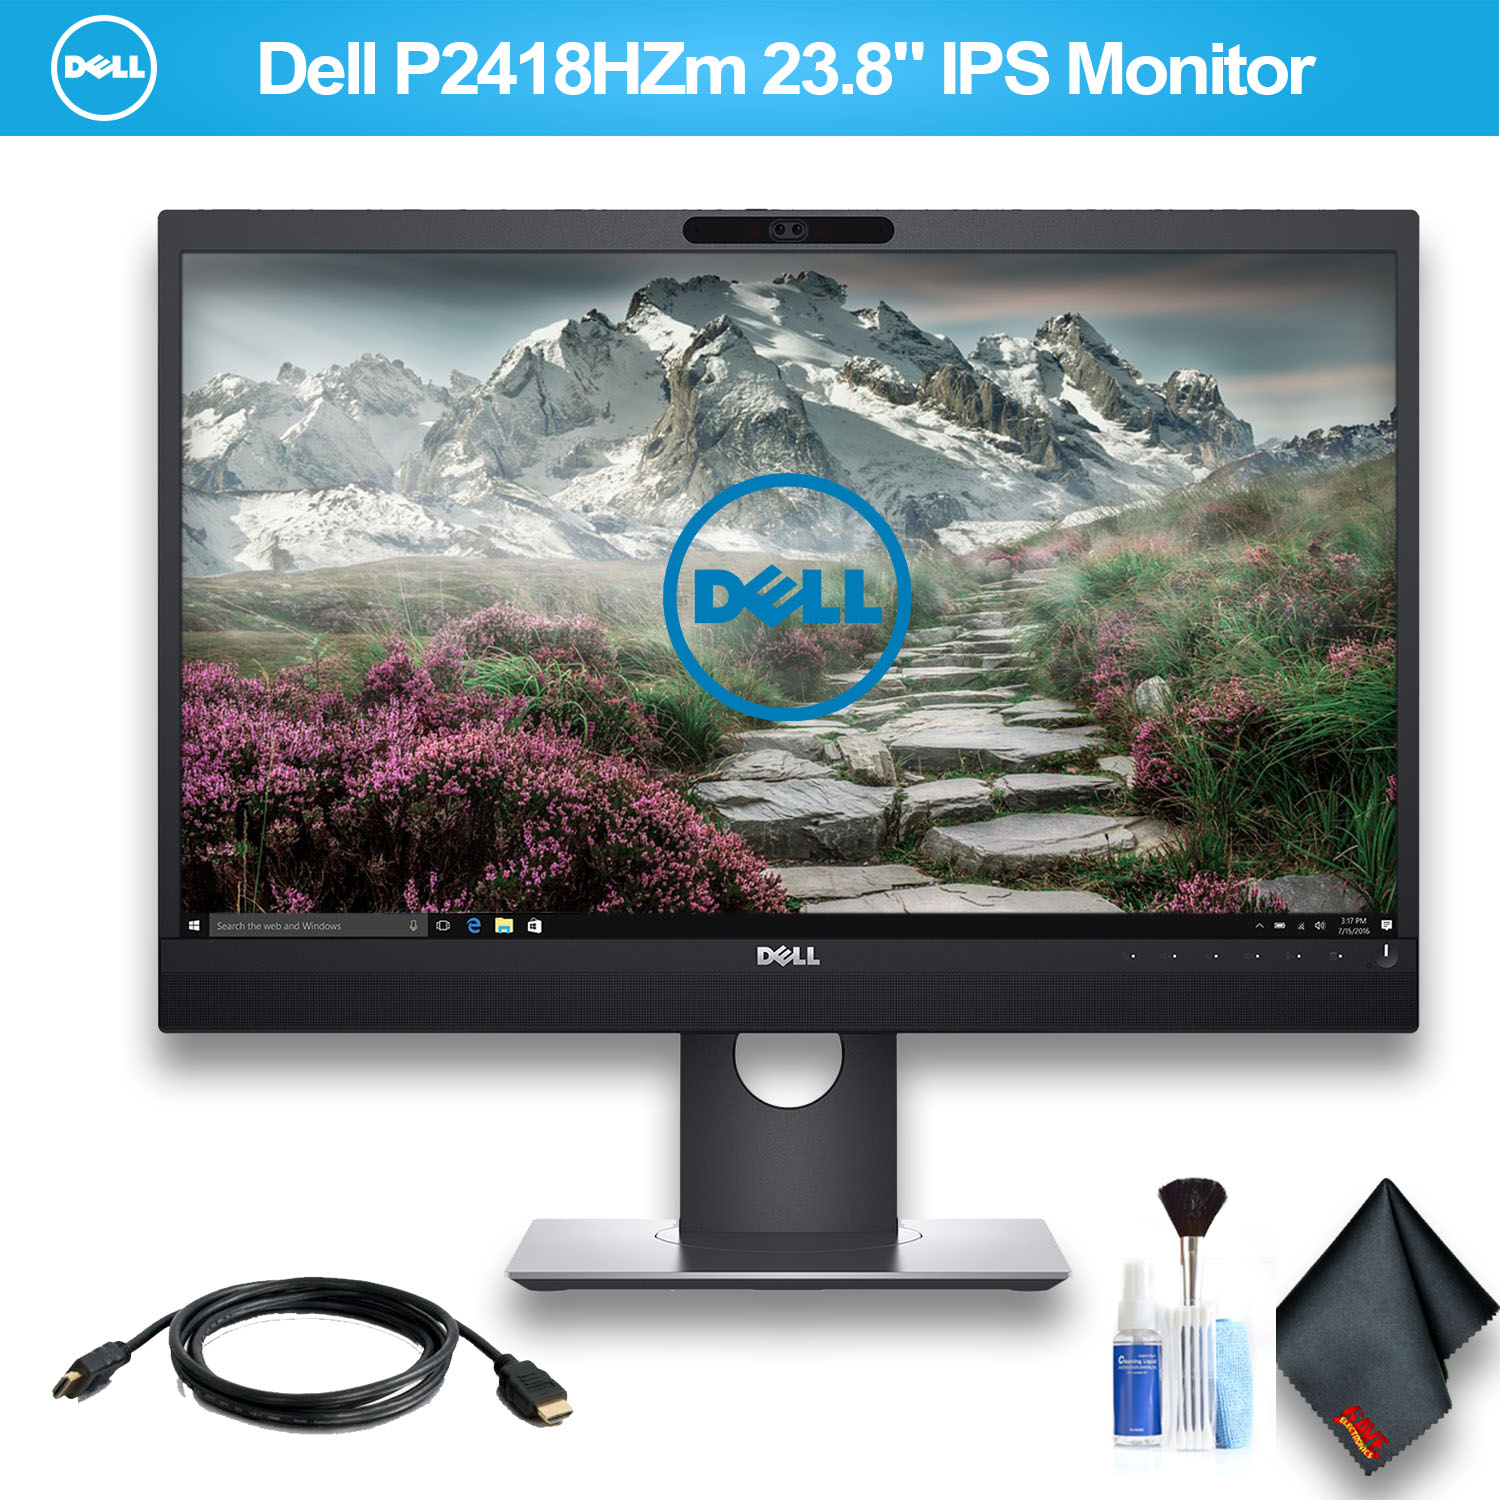 "Dell P2418HZm 23.8"" IPS Monitor With HDMI Cable"